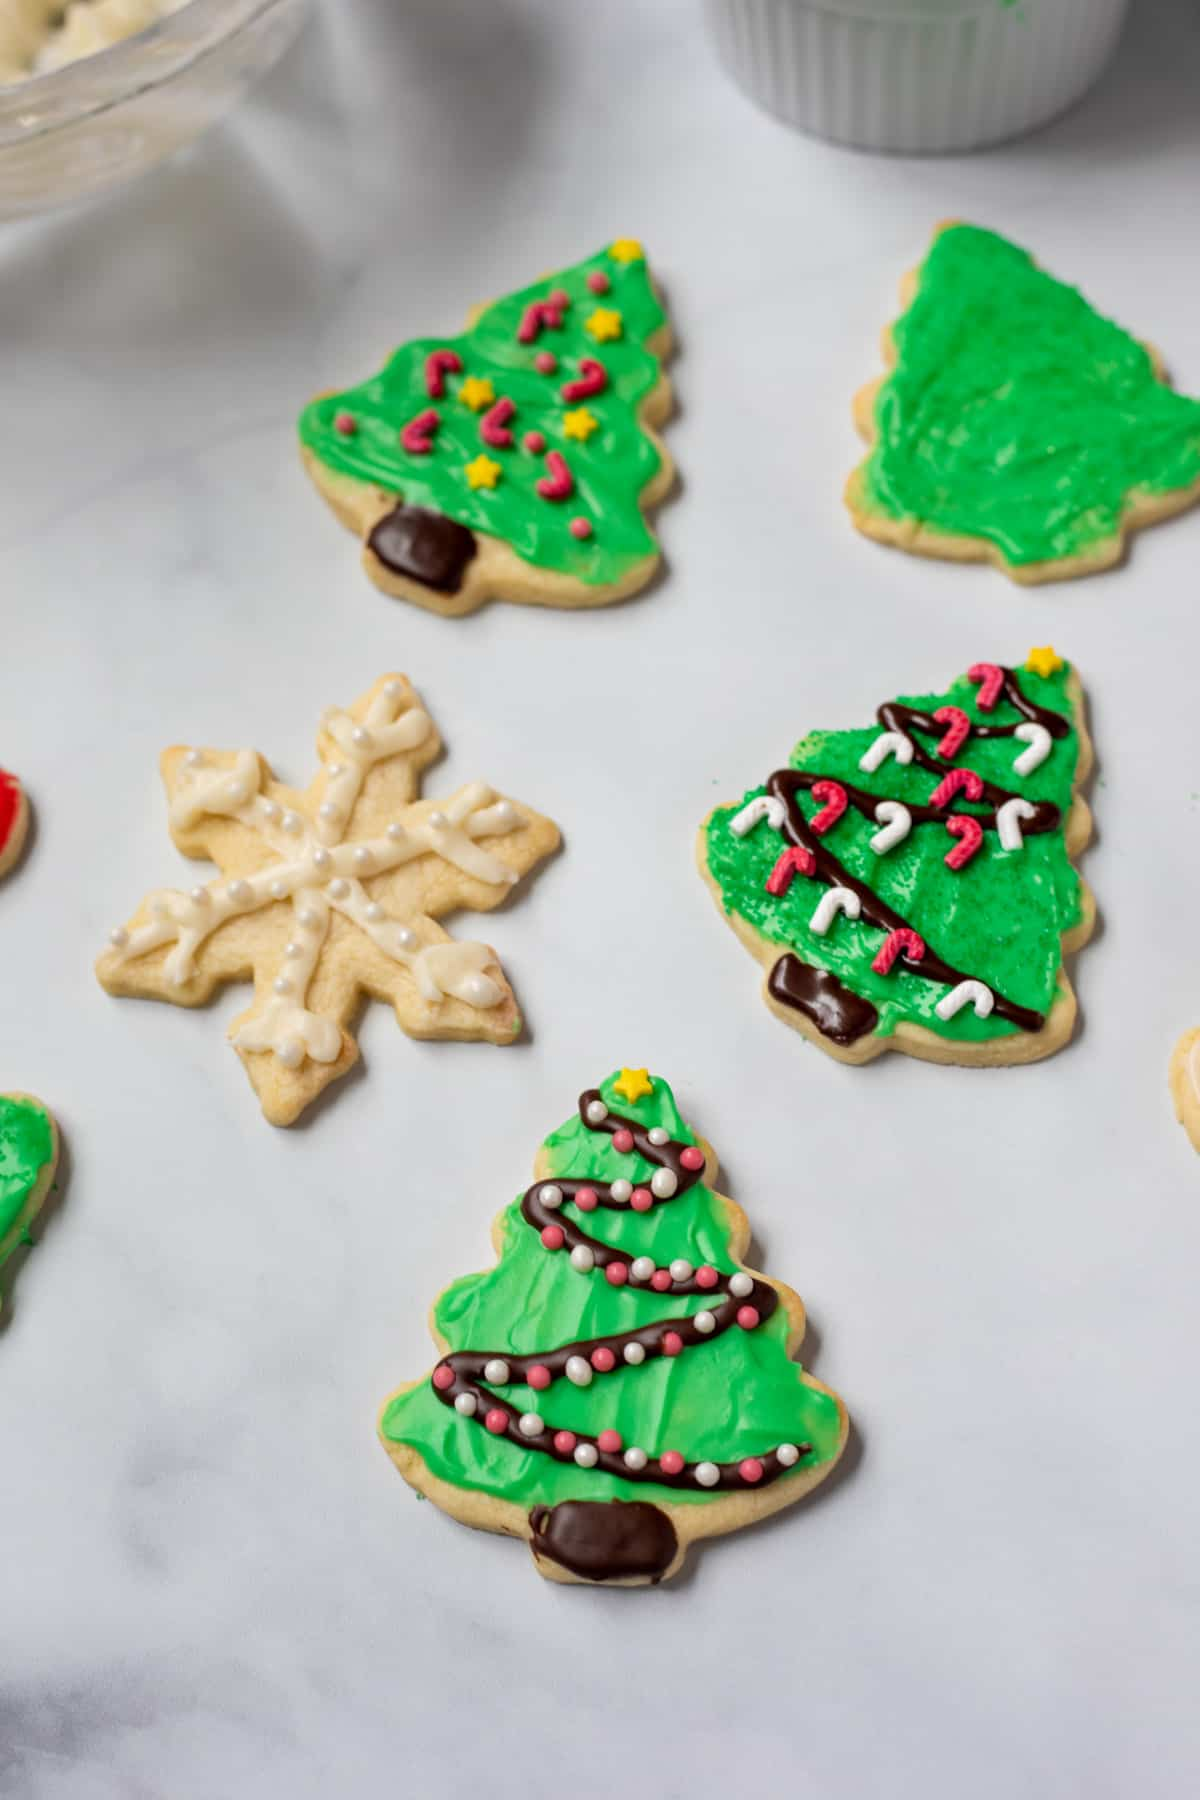 Iced Sugar Cookies on white counter.